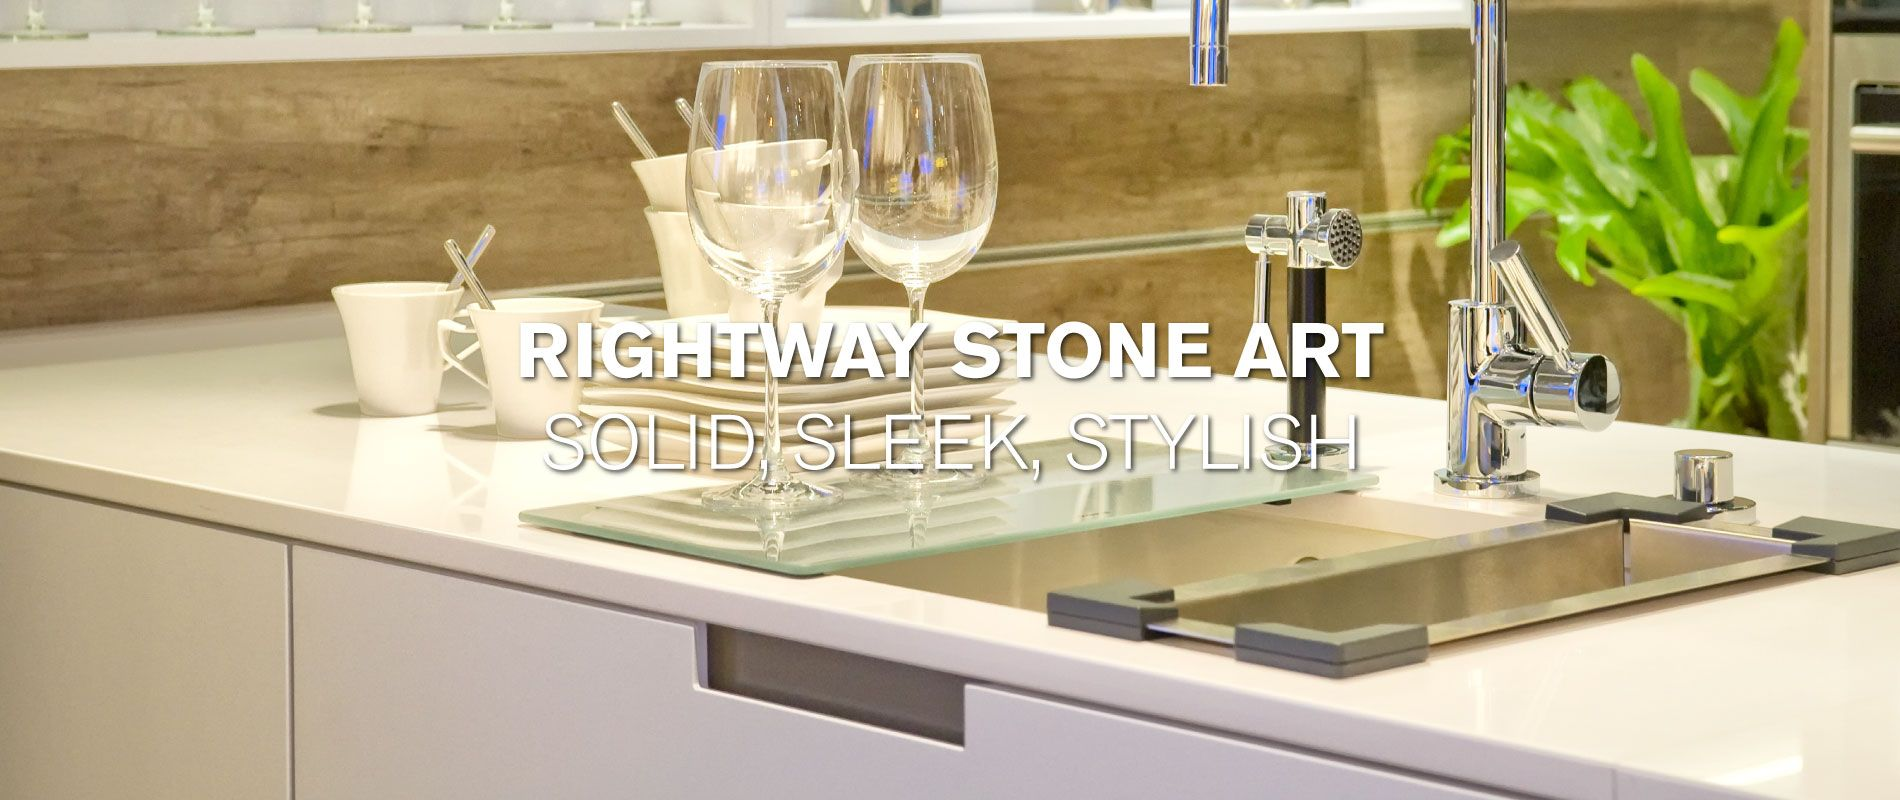 Rightway Stone Art | Solid, Sleek, Stylish | Modern kitchen sink